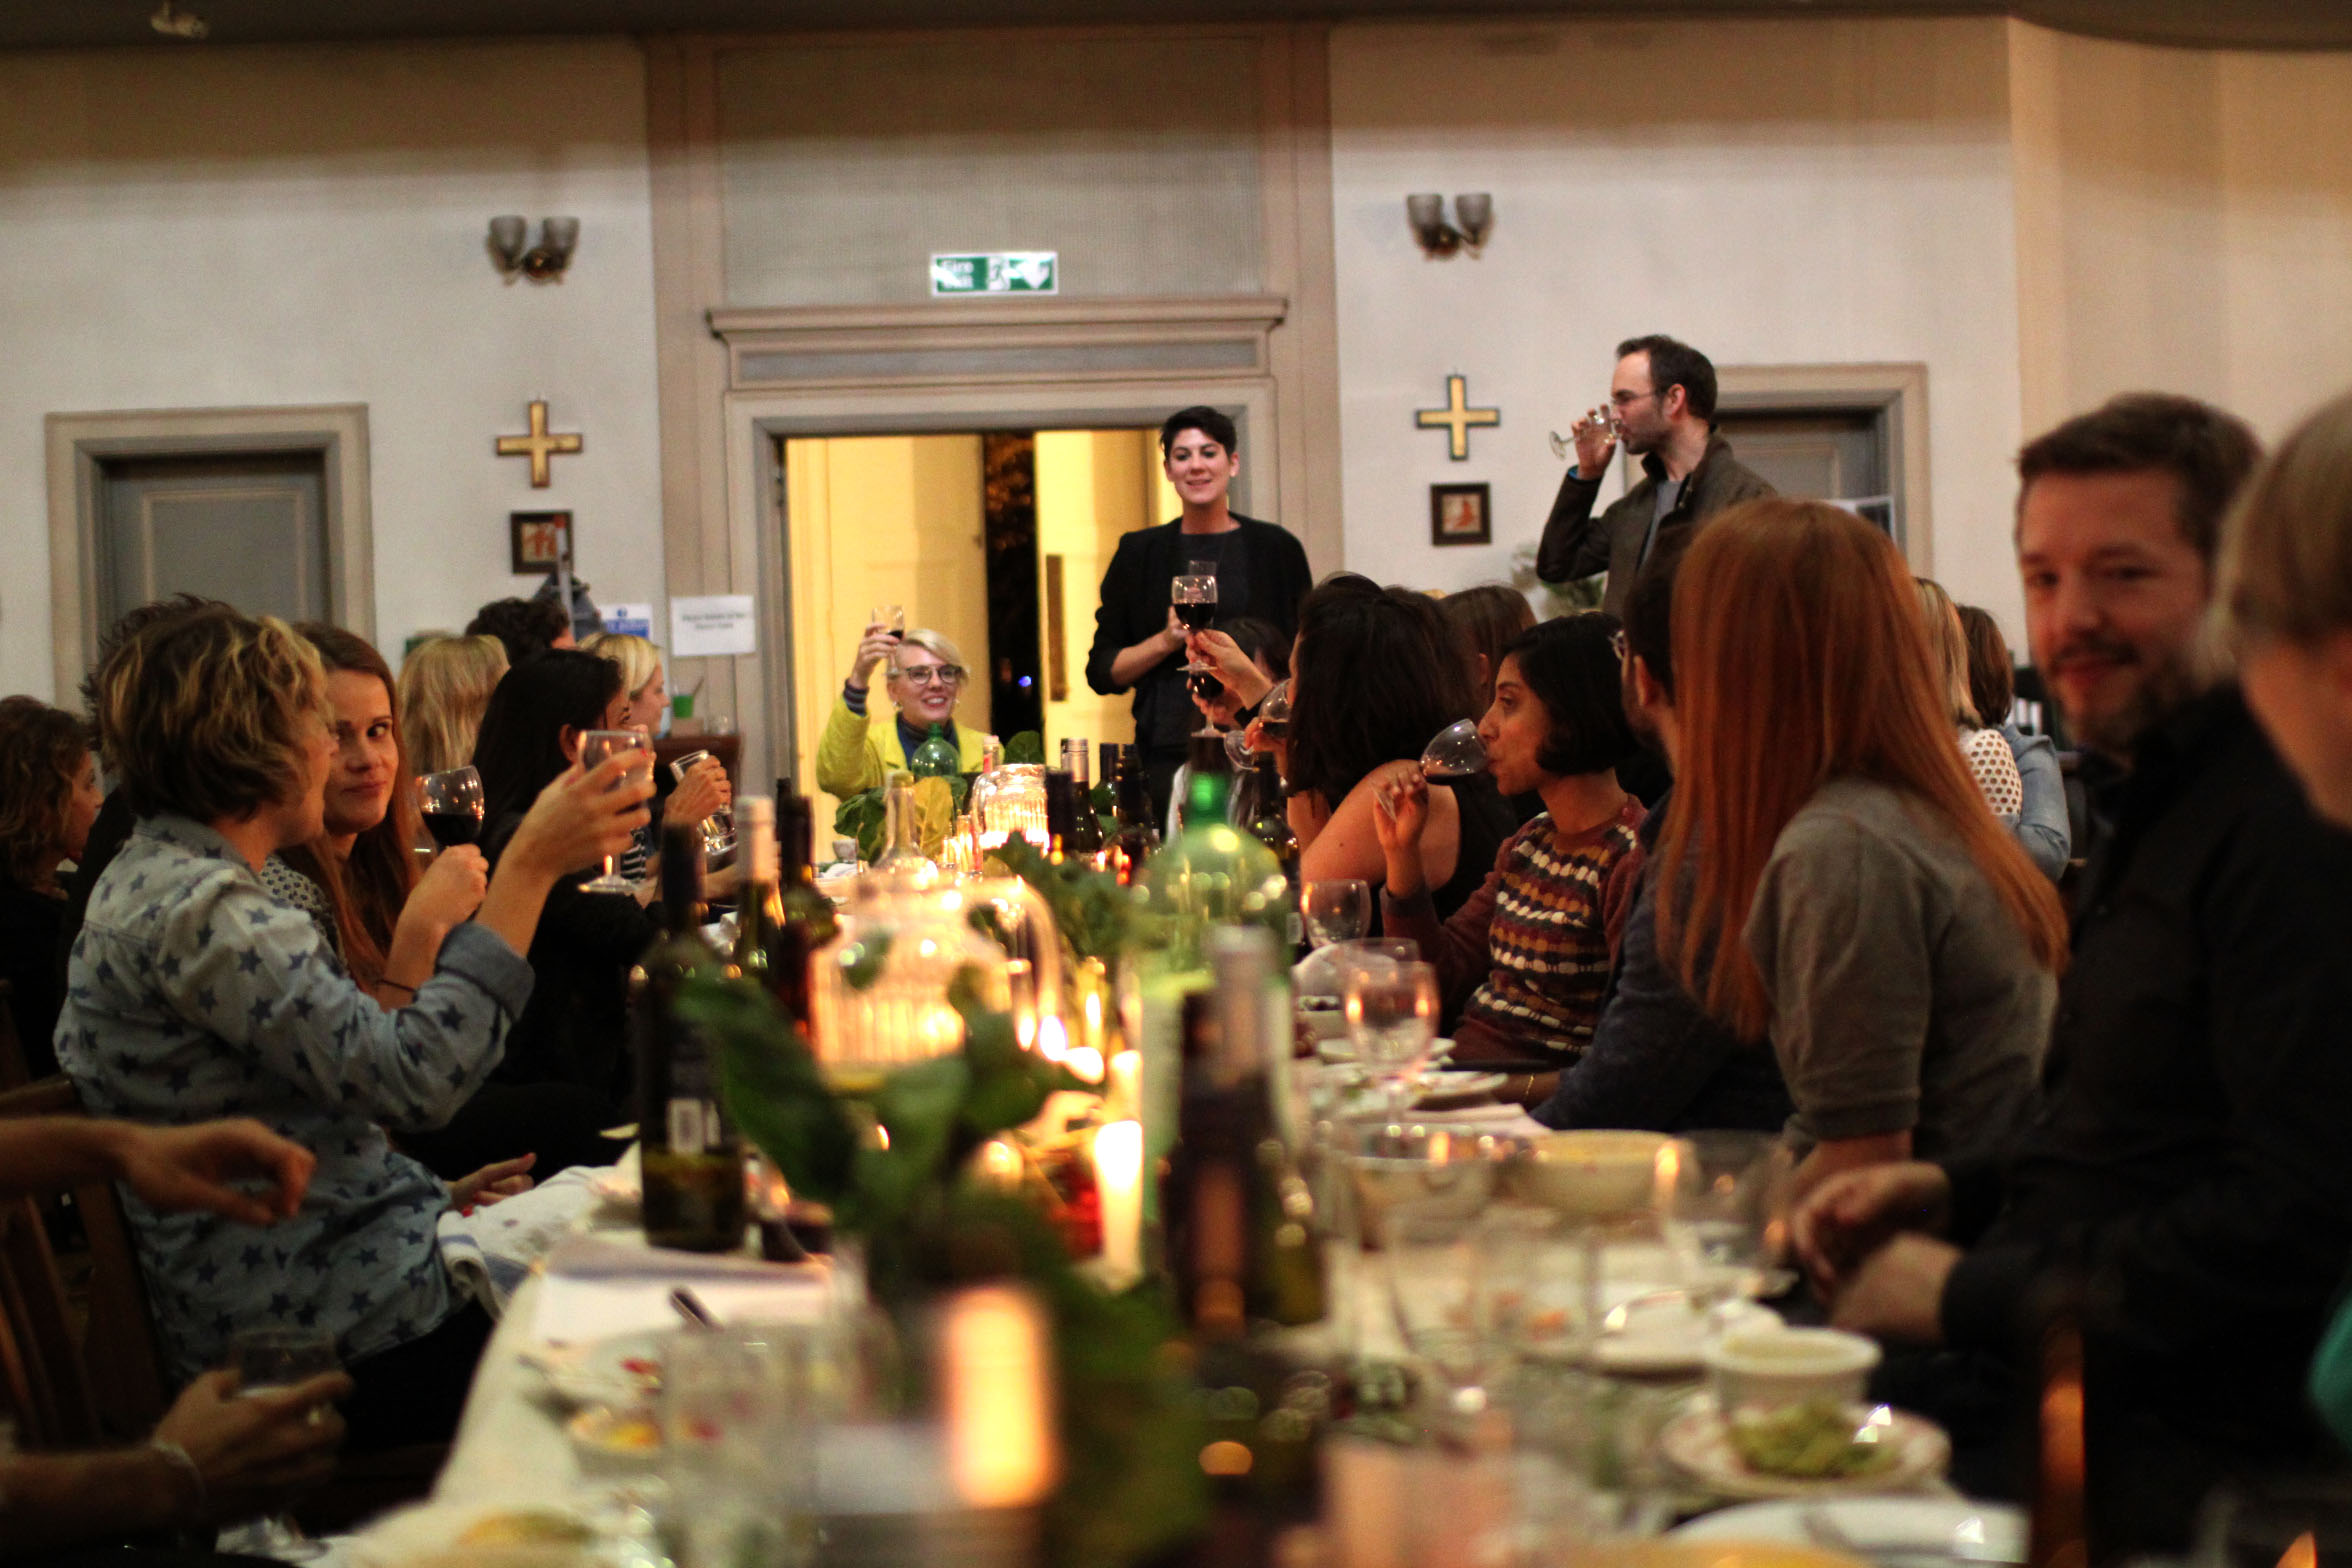 unschools_secret_dinner_party_london_4.JPG